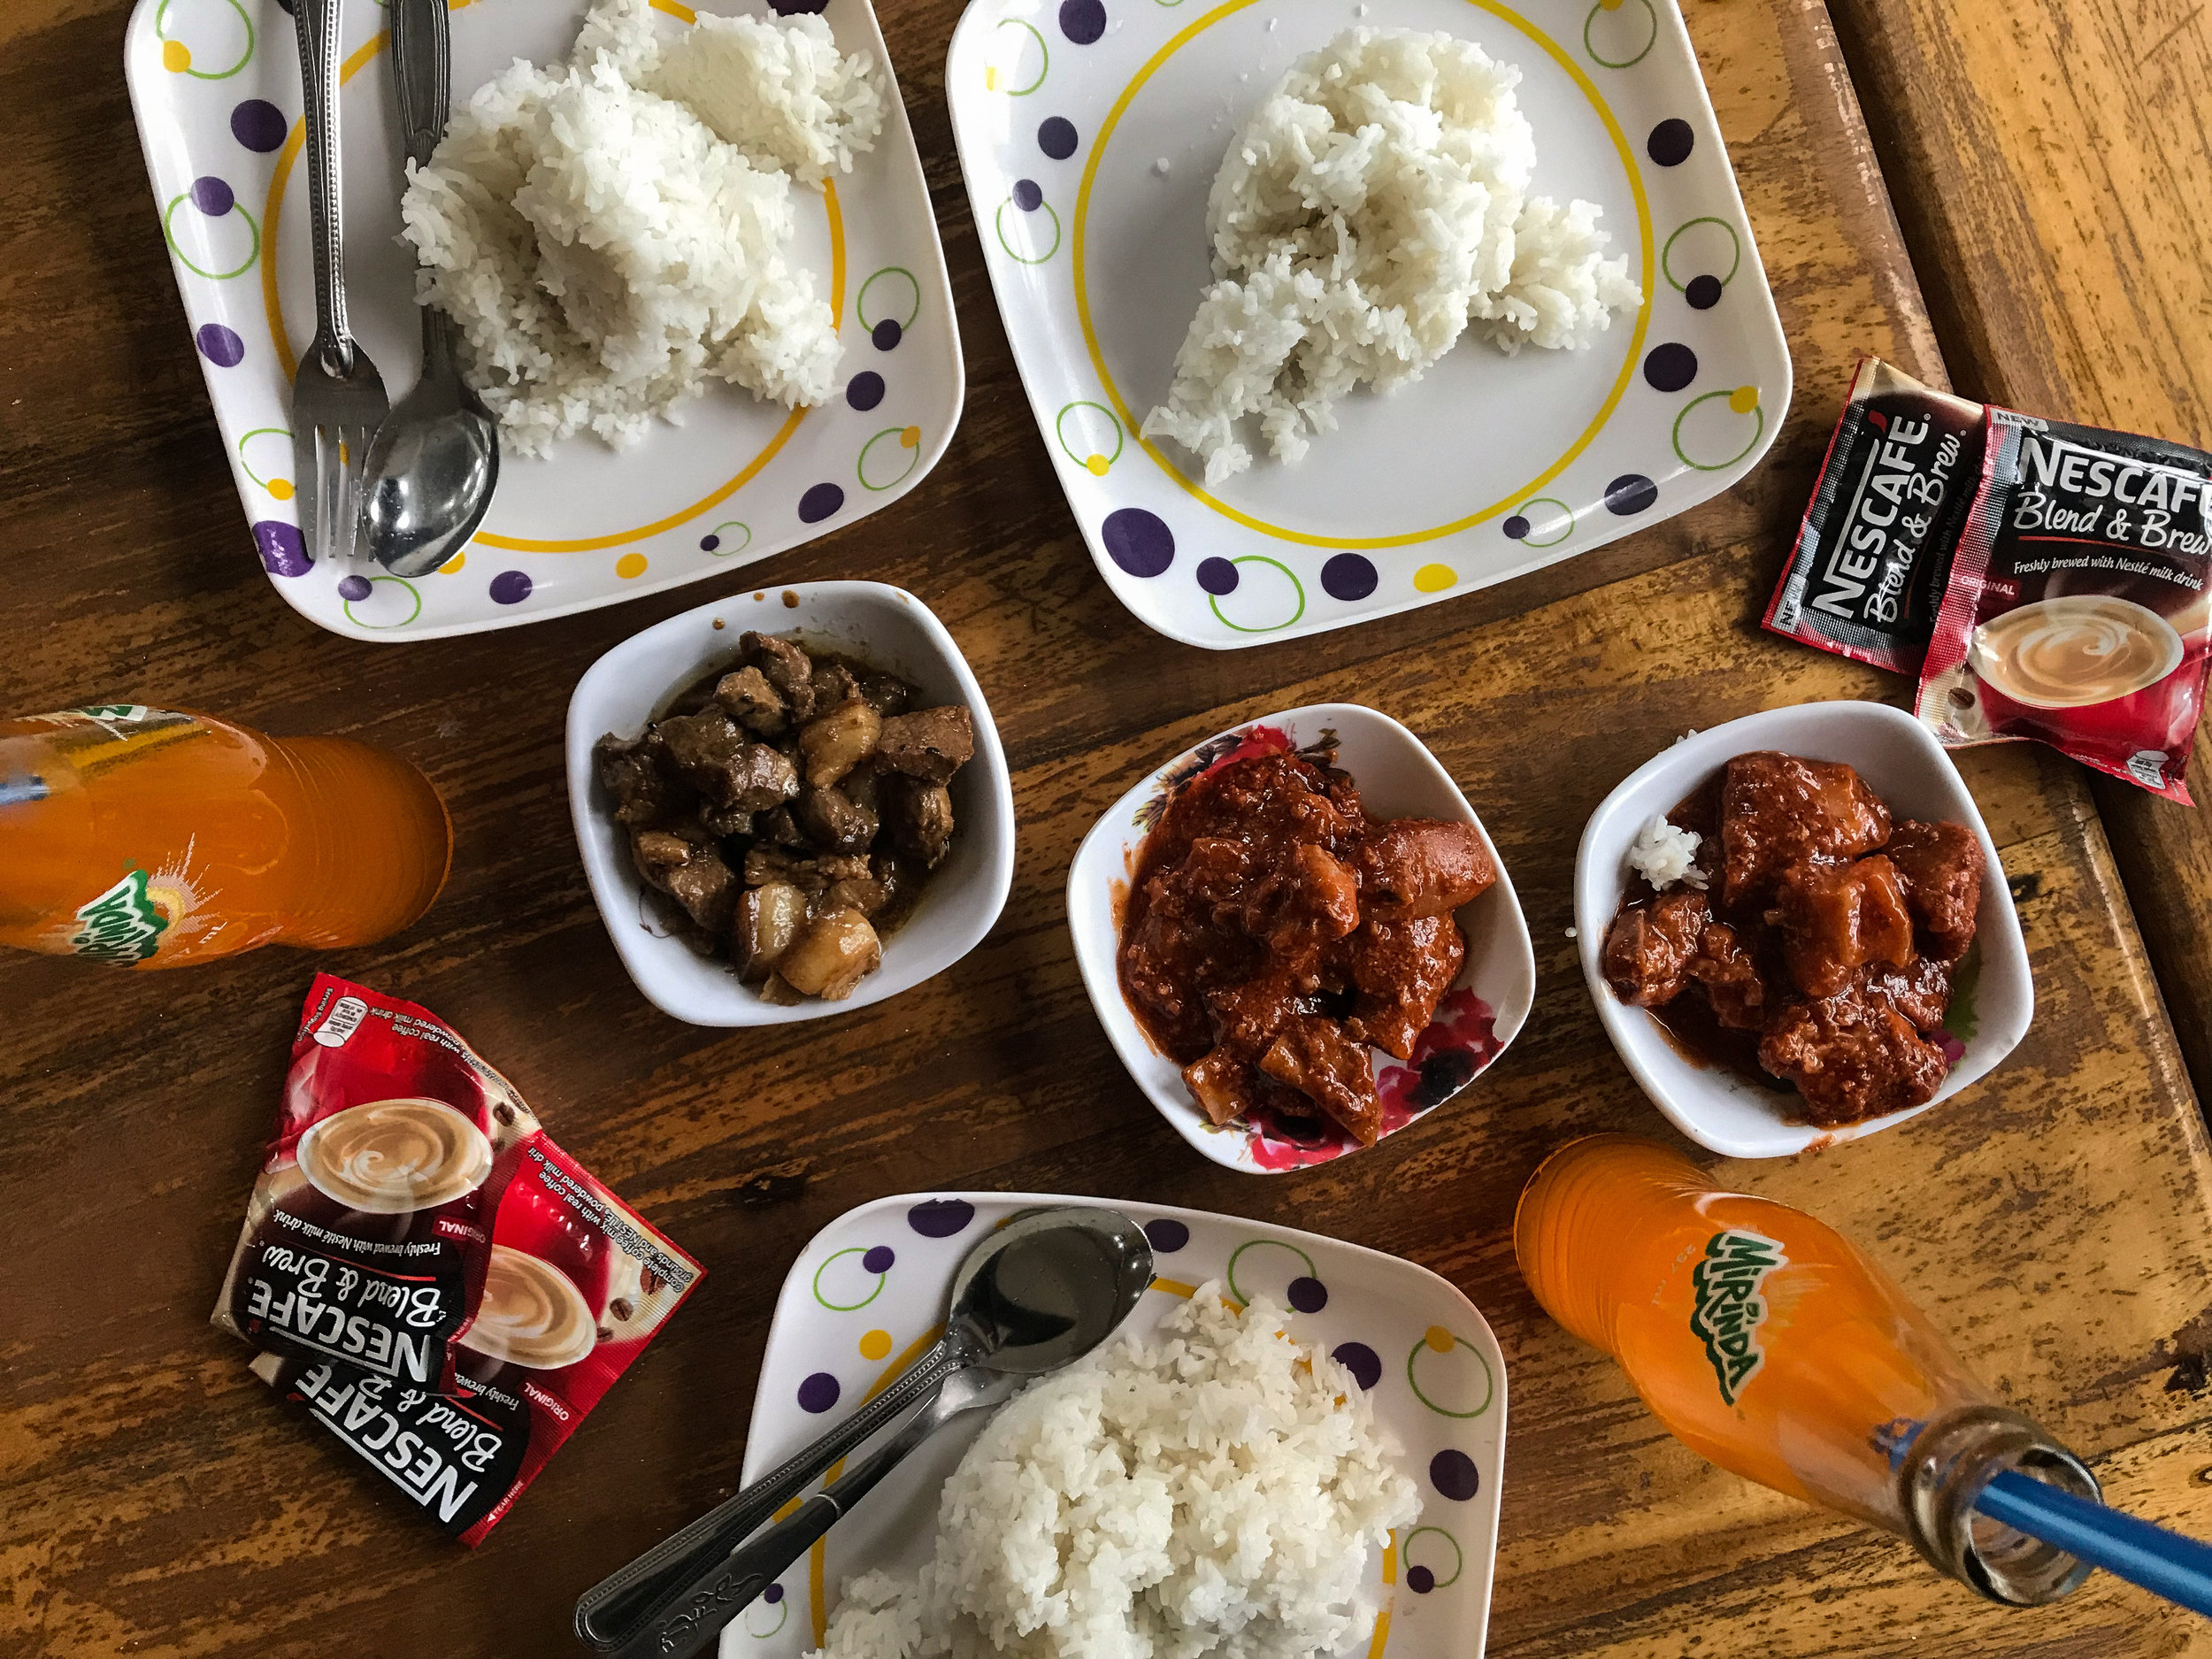 Lunch Time - We ordered Kaldareta, Adobo, Mirinda (tunay na Pinoy orange soda), and some coffee. In fairness, masarap naman yung pagkain. Felt home-y.